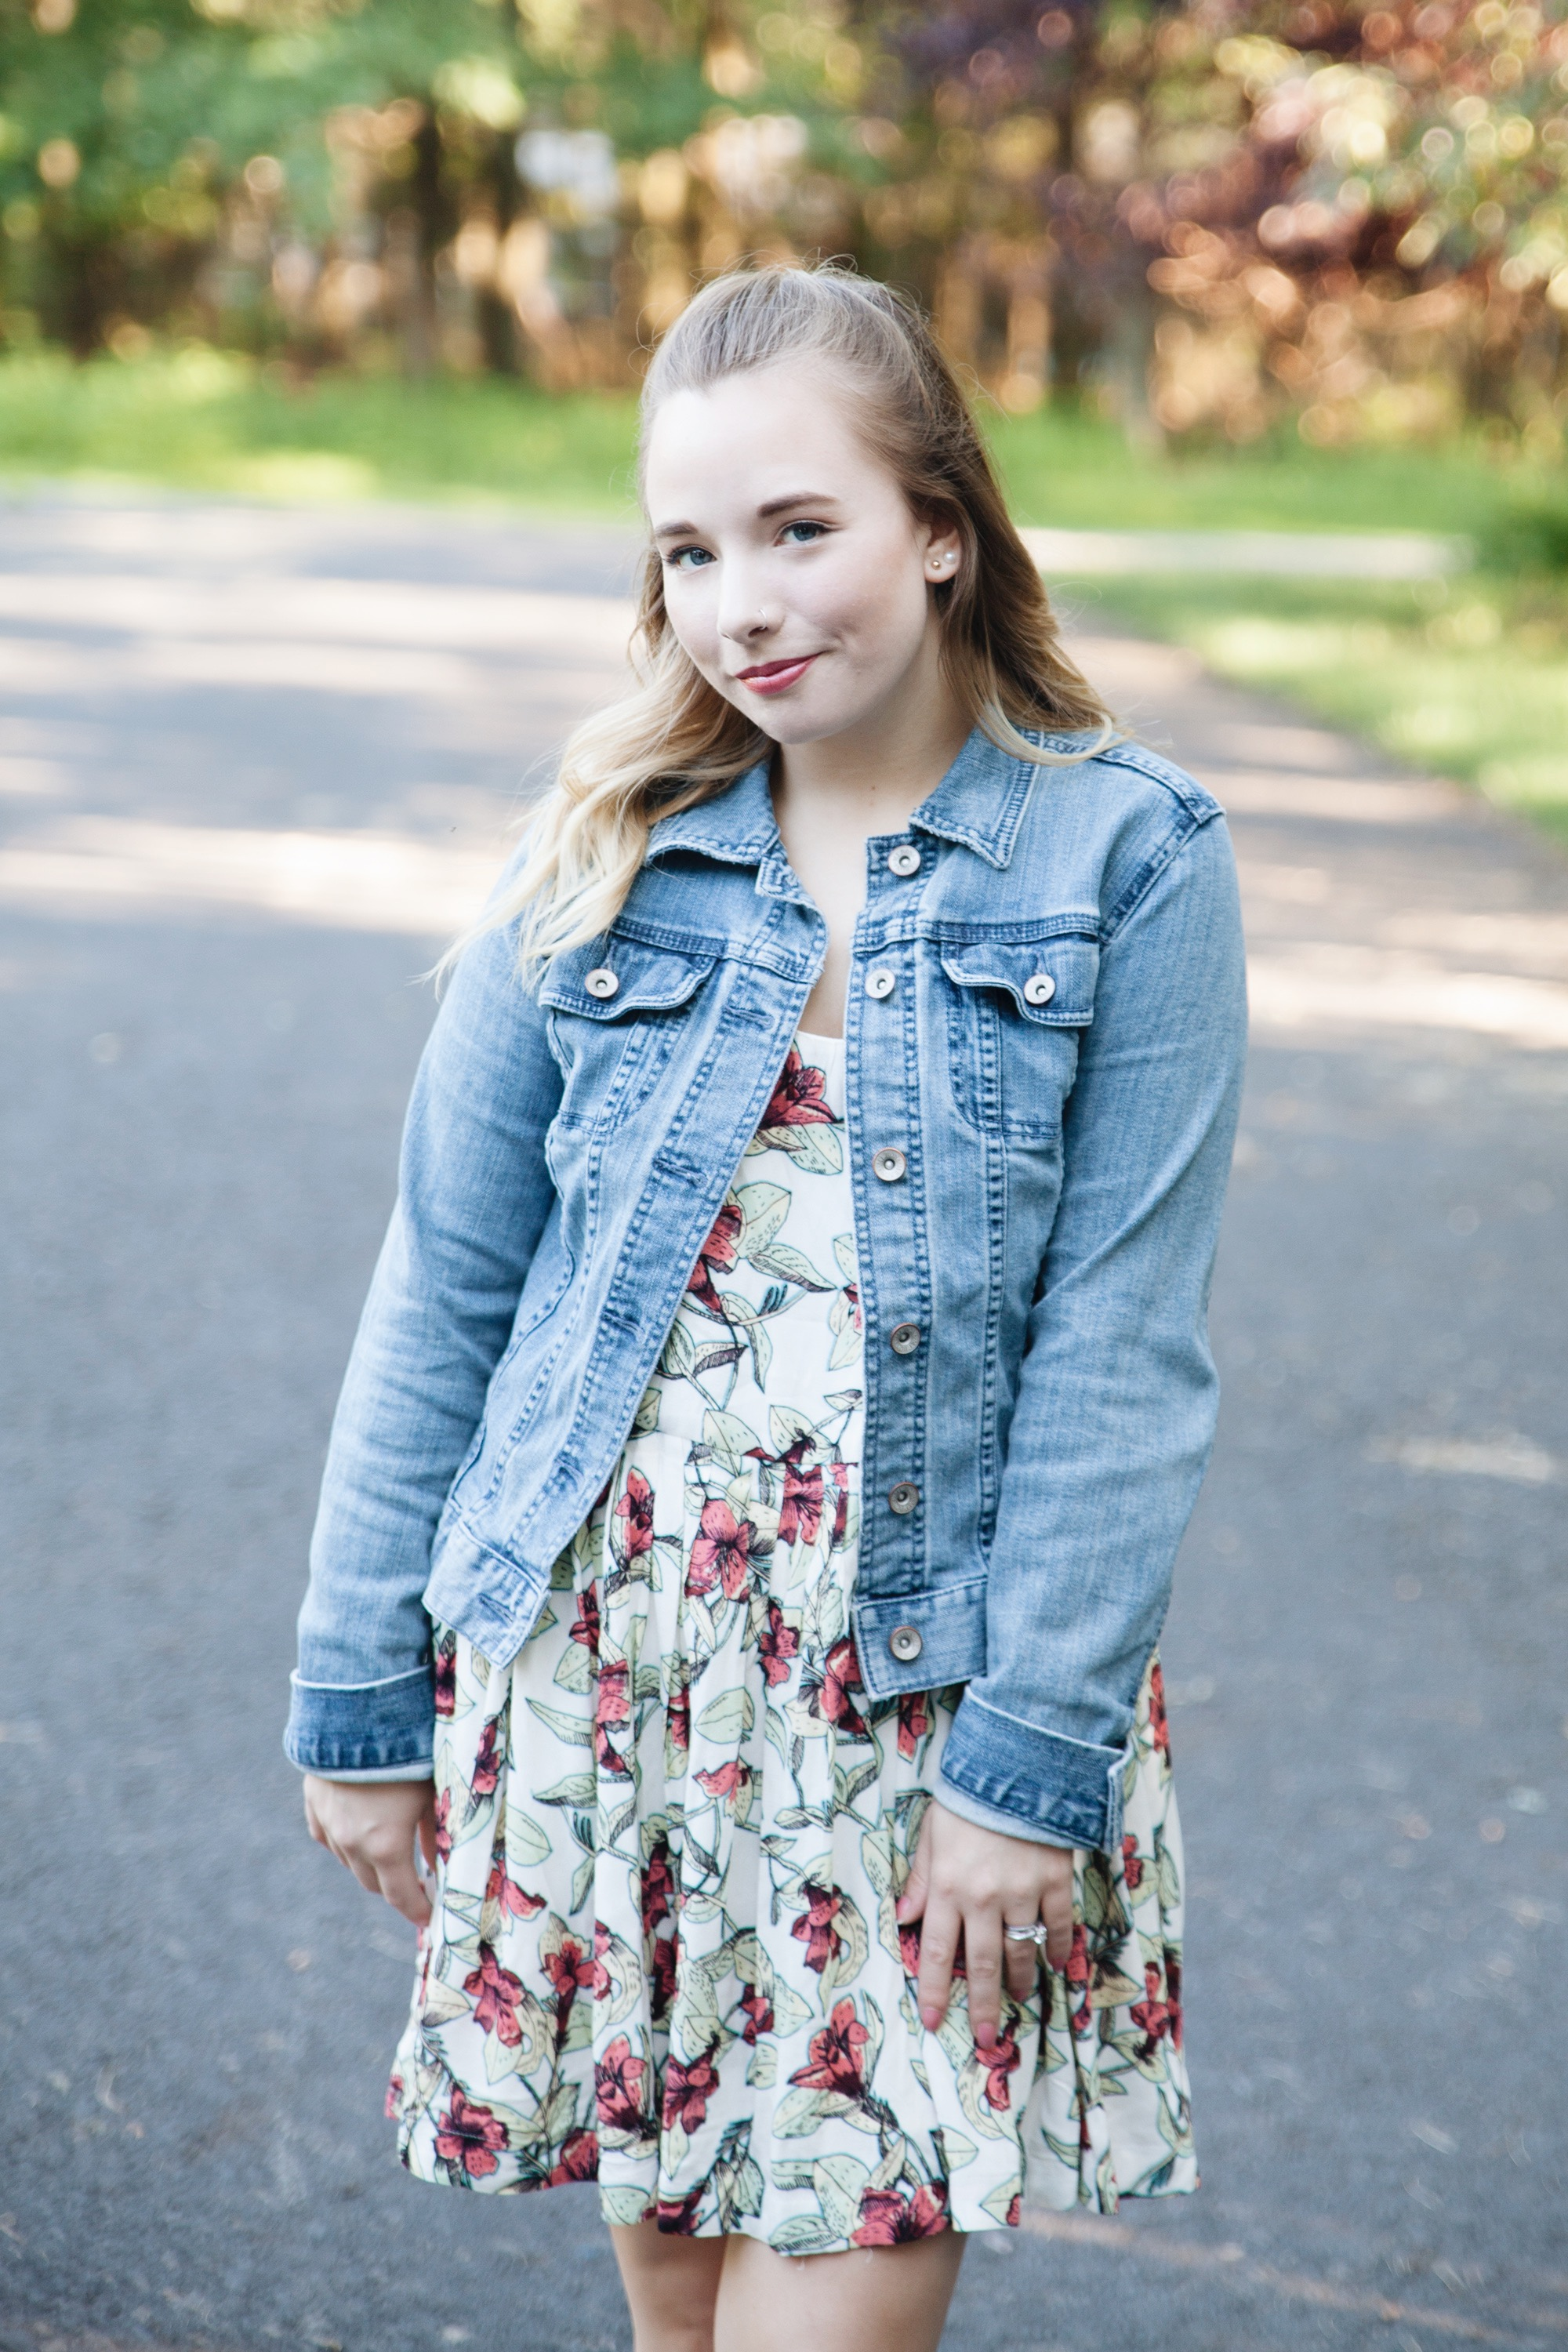 Floral Dress & Denim Jacket | Coffee With Summer